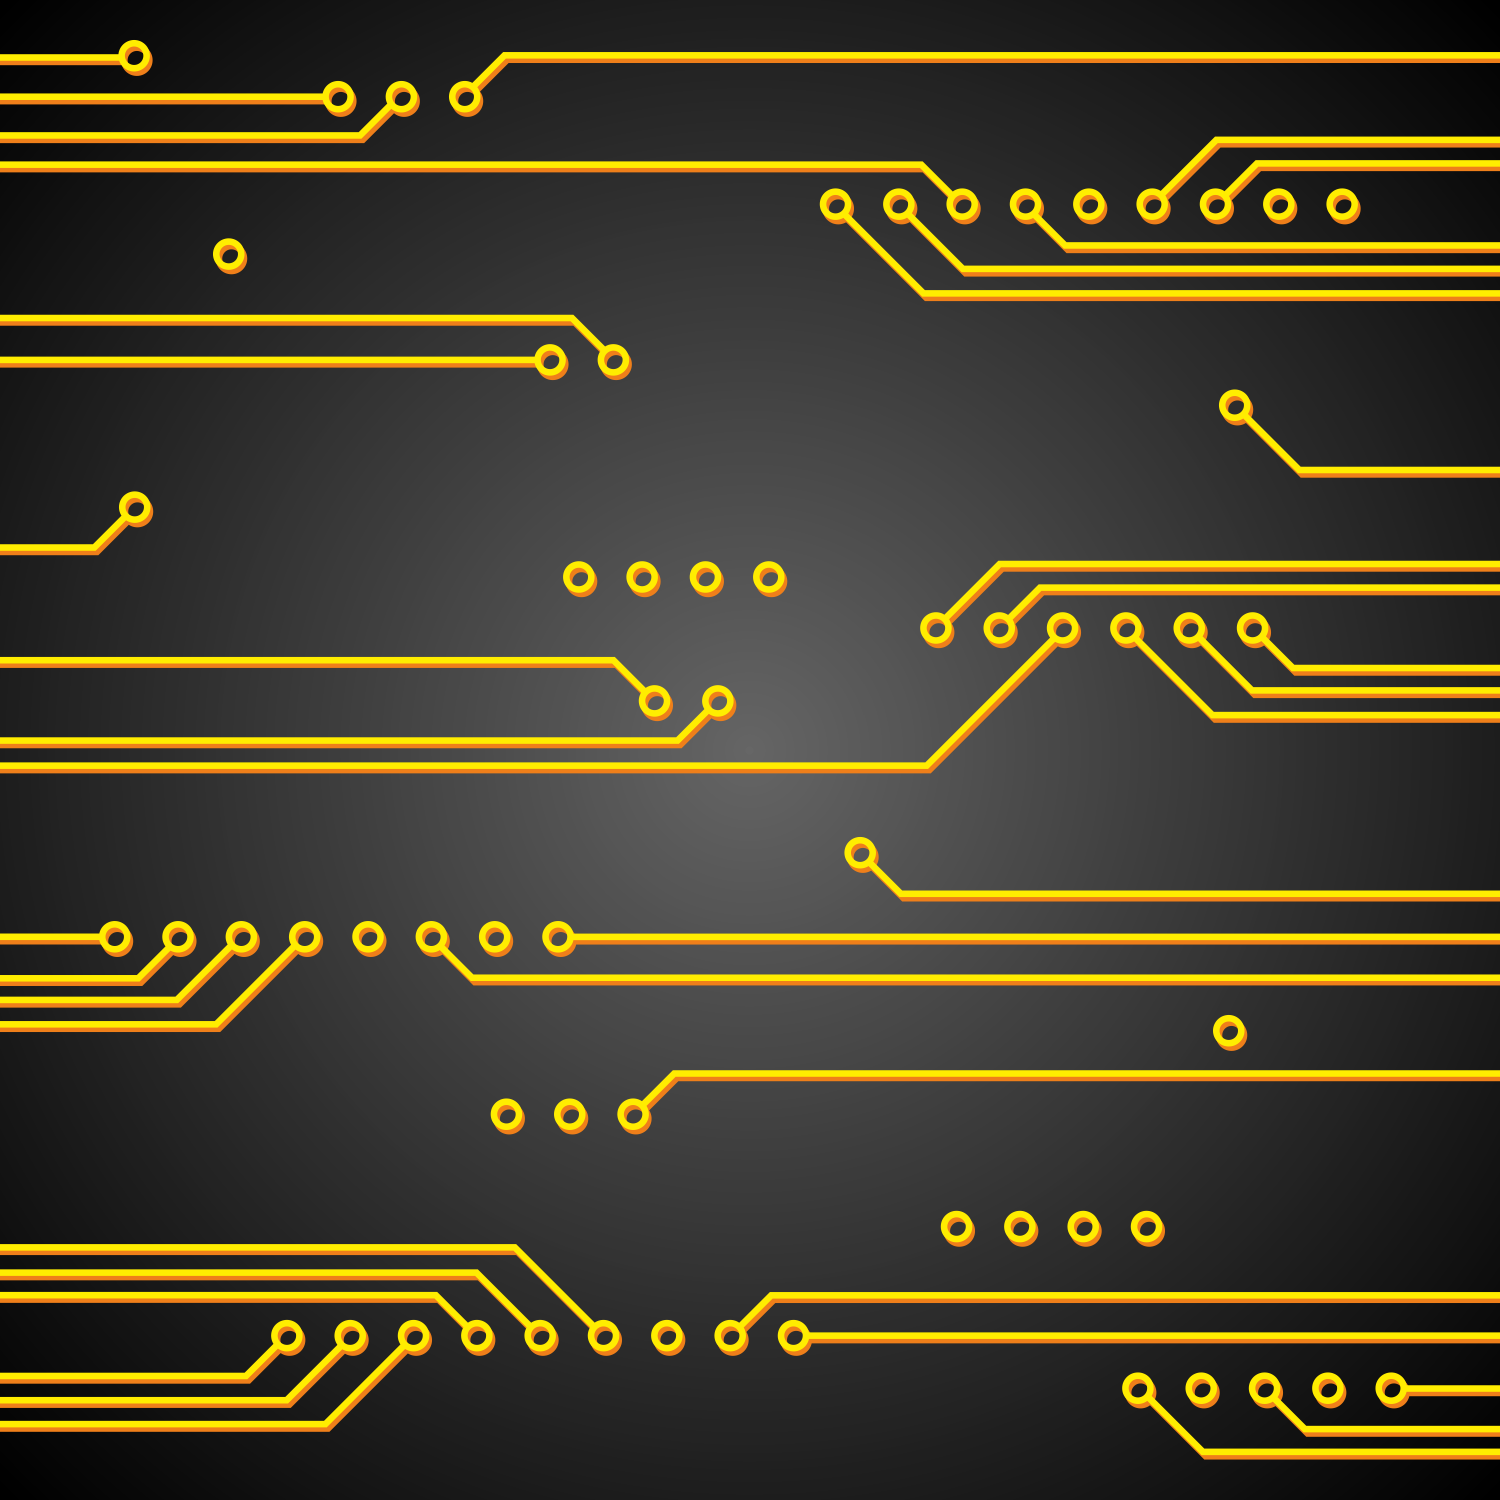 Circuit Vector Free At For Personal Use How To Design Boards 1500x1500 Board Background